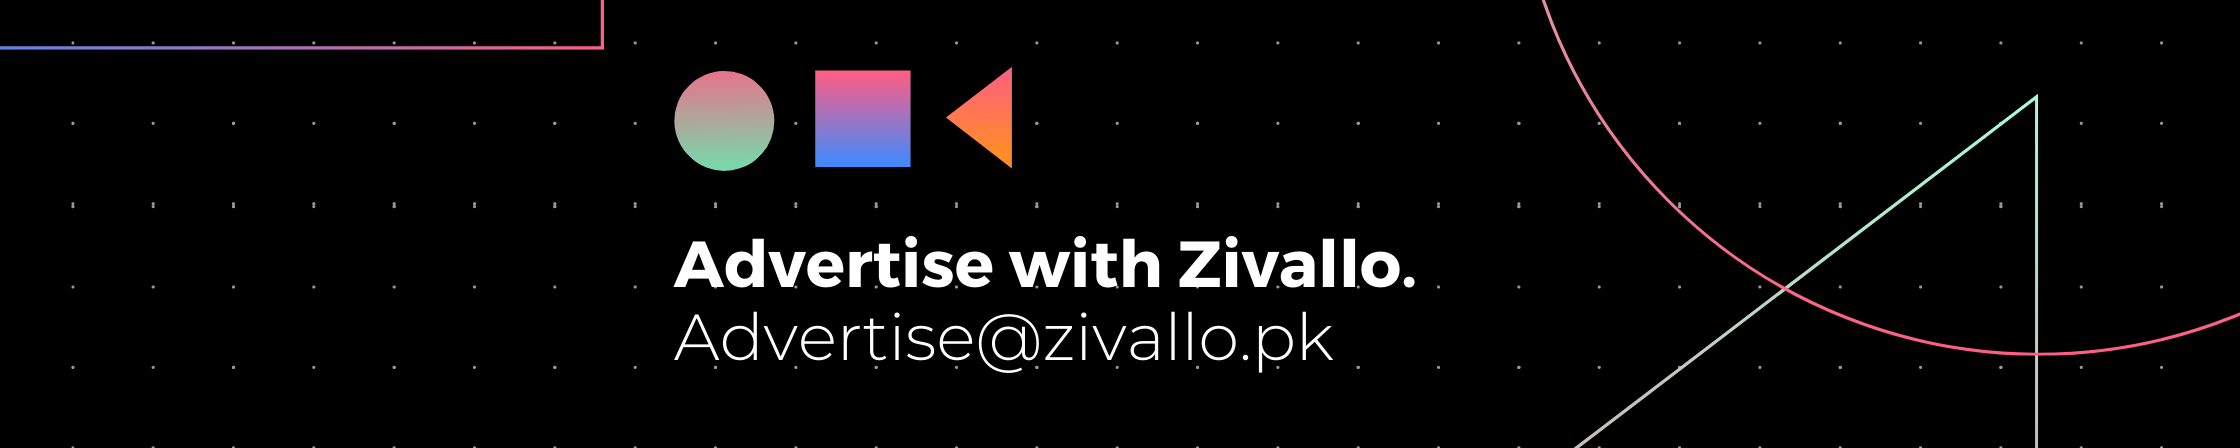 Zivallo | Technology And Business News From Pakistan 2